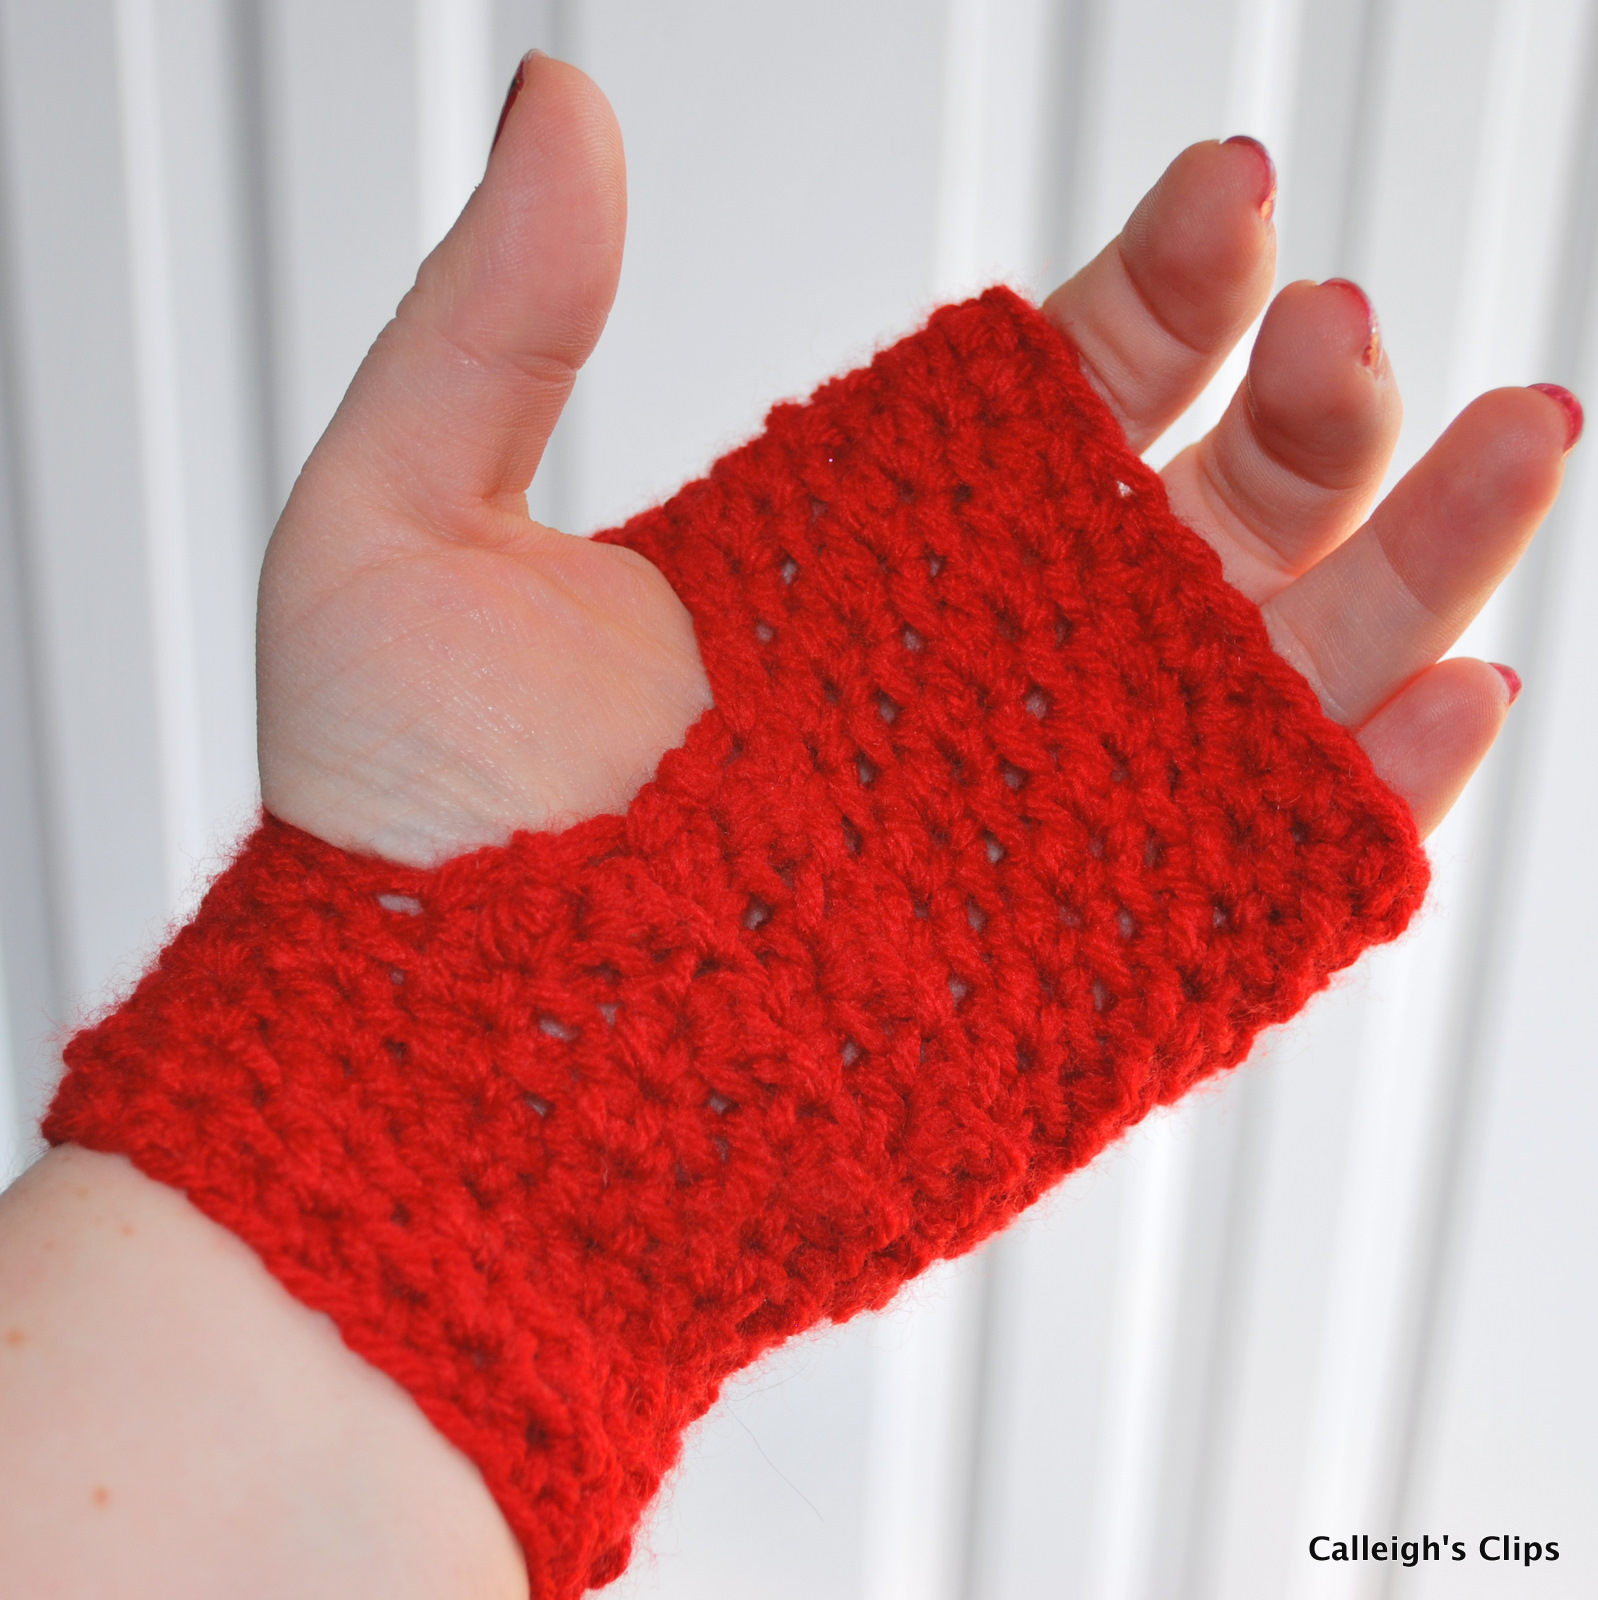 Free Crochet Pattern Gloves Fingerless : Calleighs Clips & Crochet Creations: Textured Fingerless ...